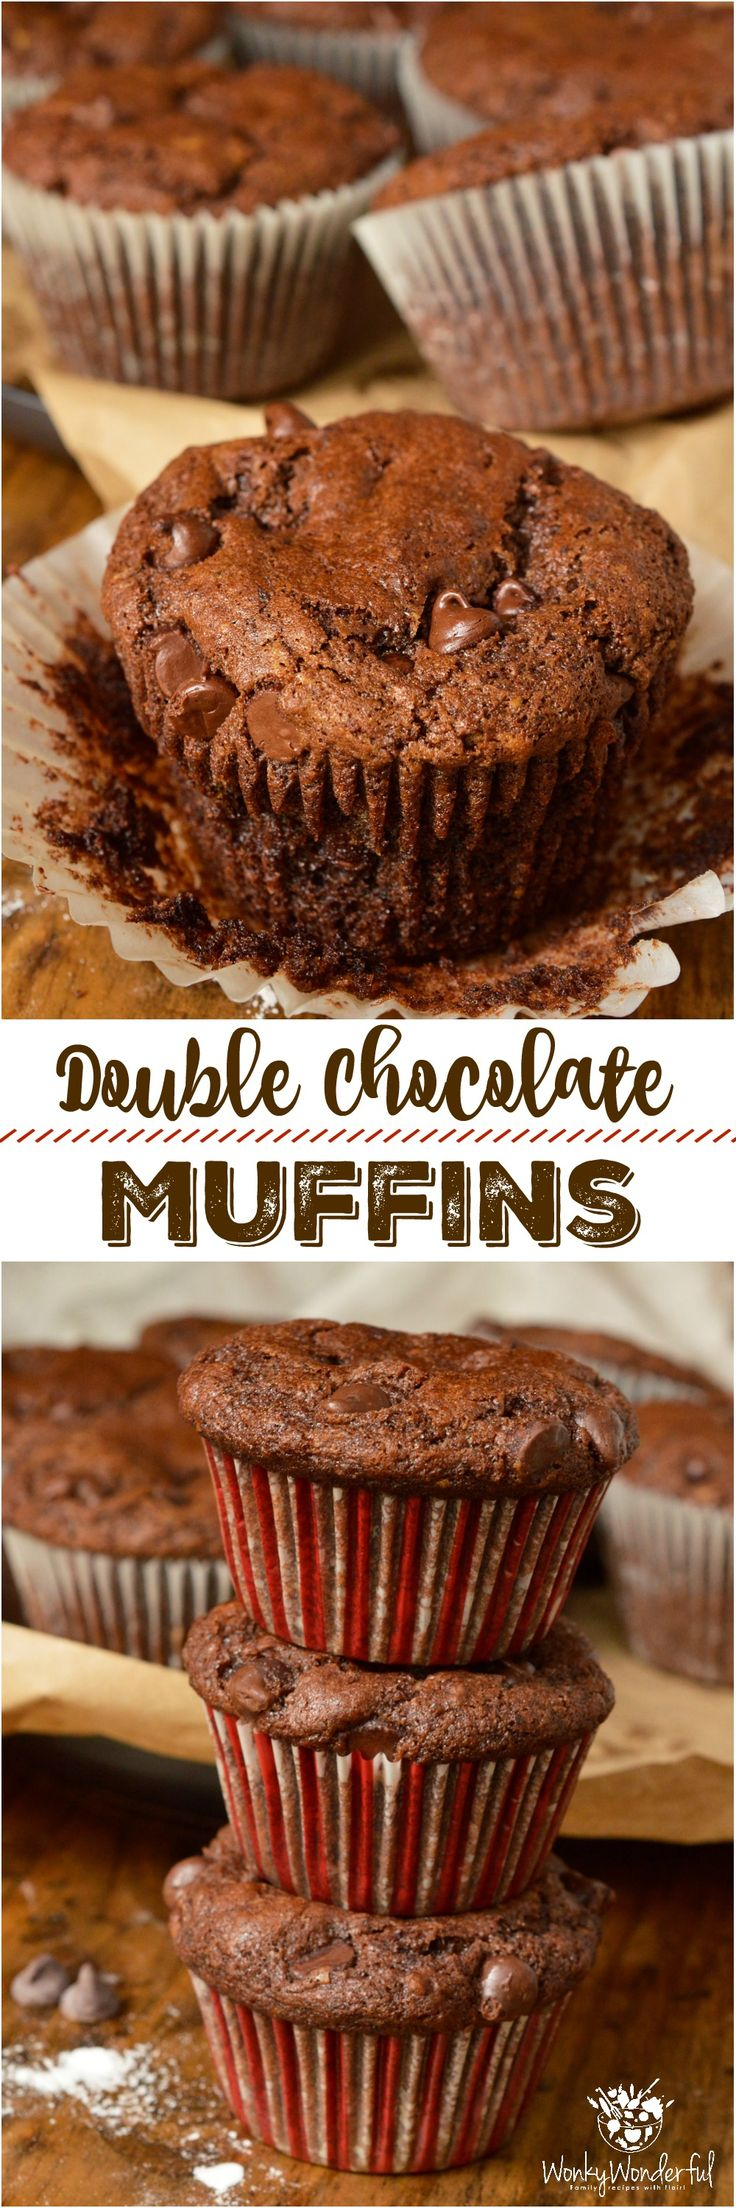 Inspired by Costco Jumbo Chocolate Muffins, theseDouble Chocolate Chip Muffins are even better! Quality Dutch-processed cocoa and a generous amount of chocolate chips make this the ultimate chocolate lover's recipe. What's better than eating chocolate cake for breakfast!?!? #chocolatemuffins #muffinrecipe #muffins ad